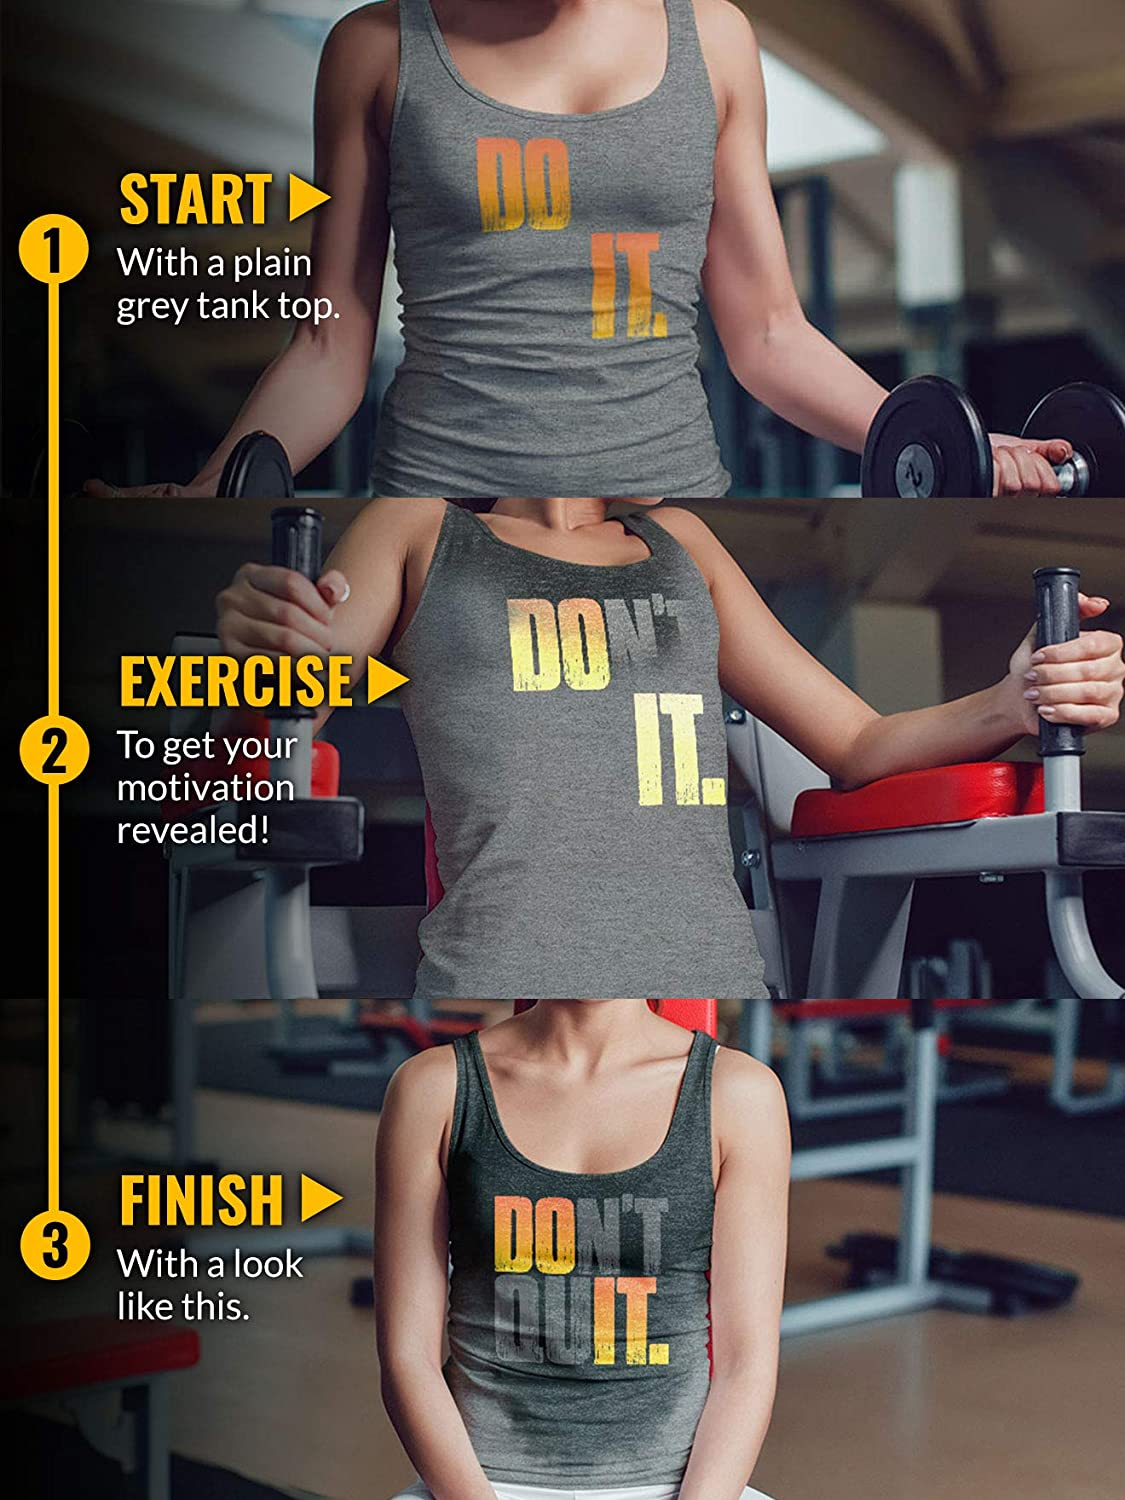 Actizio Sweat Activated Funny Workout Women's Tank Top, Do It - Don't Quit: Clothing